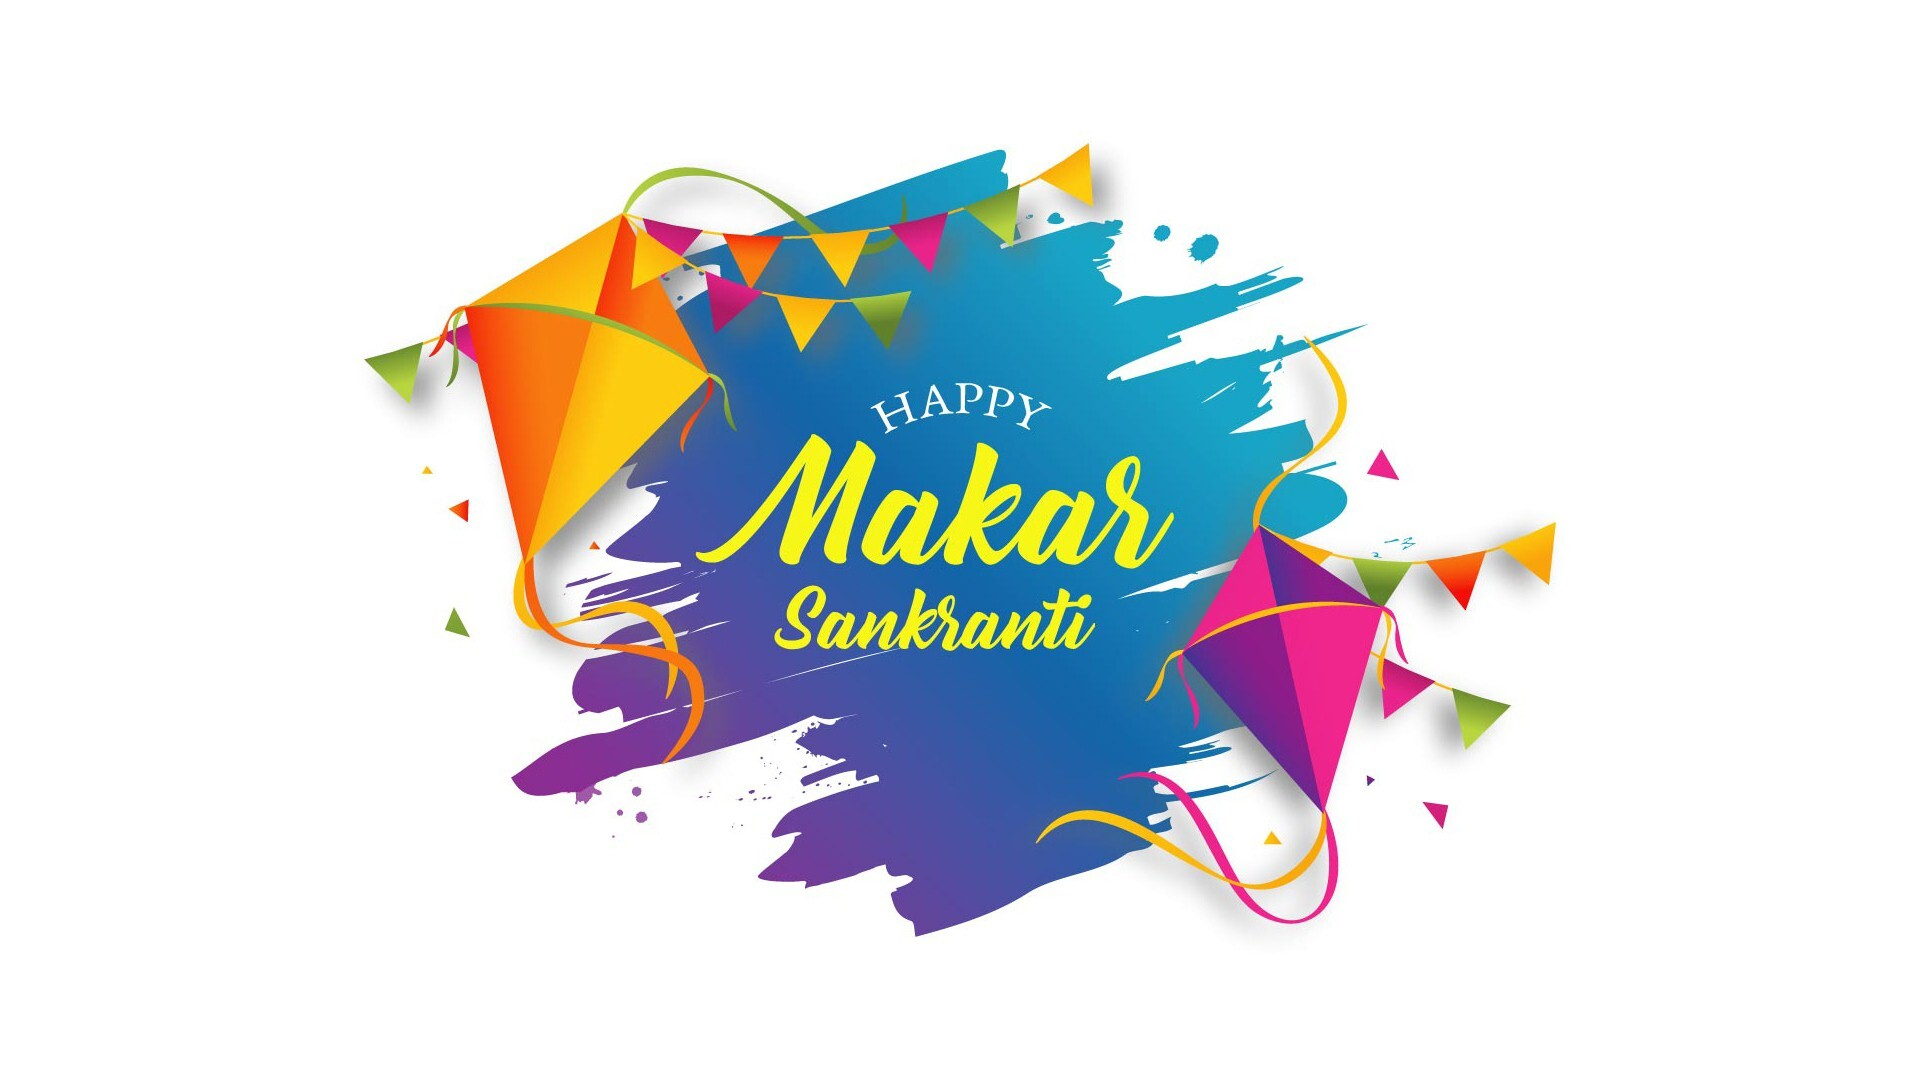 download pic of happy makar sankranti hd wallpapers download pic of happy makar sankranti